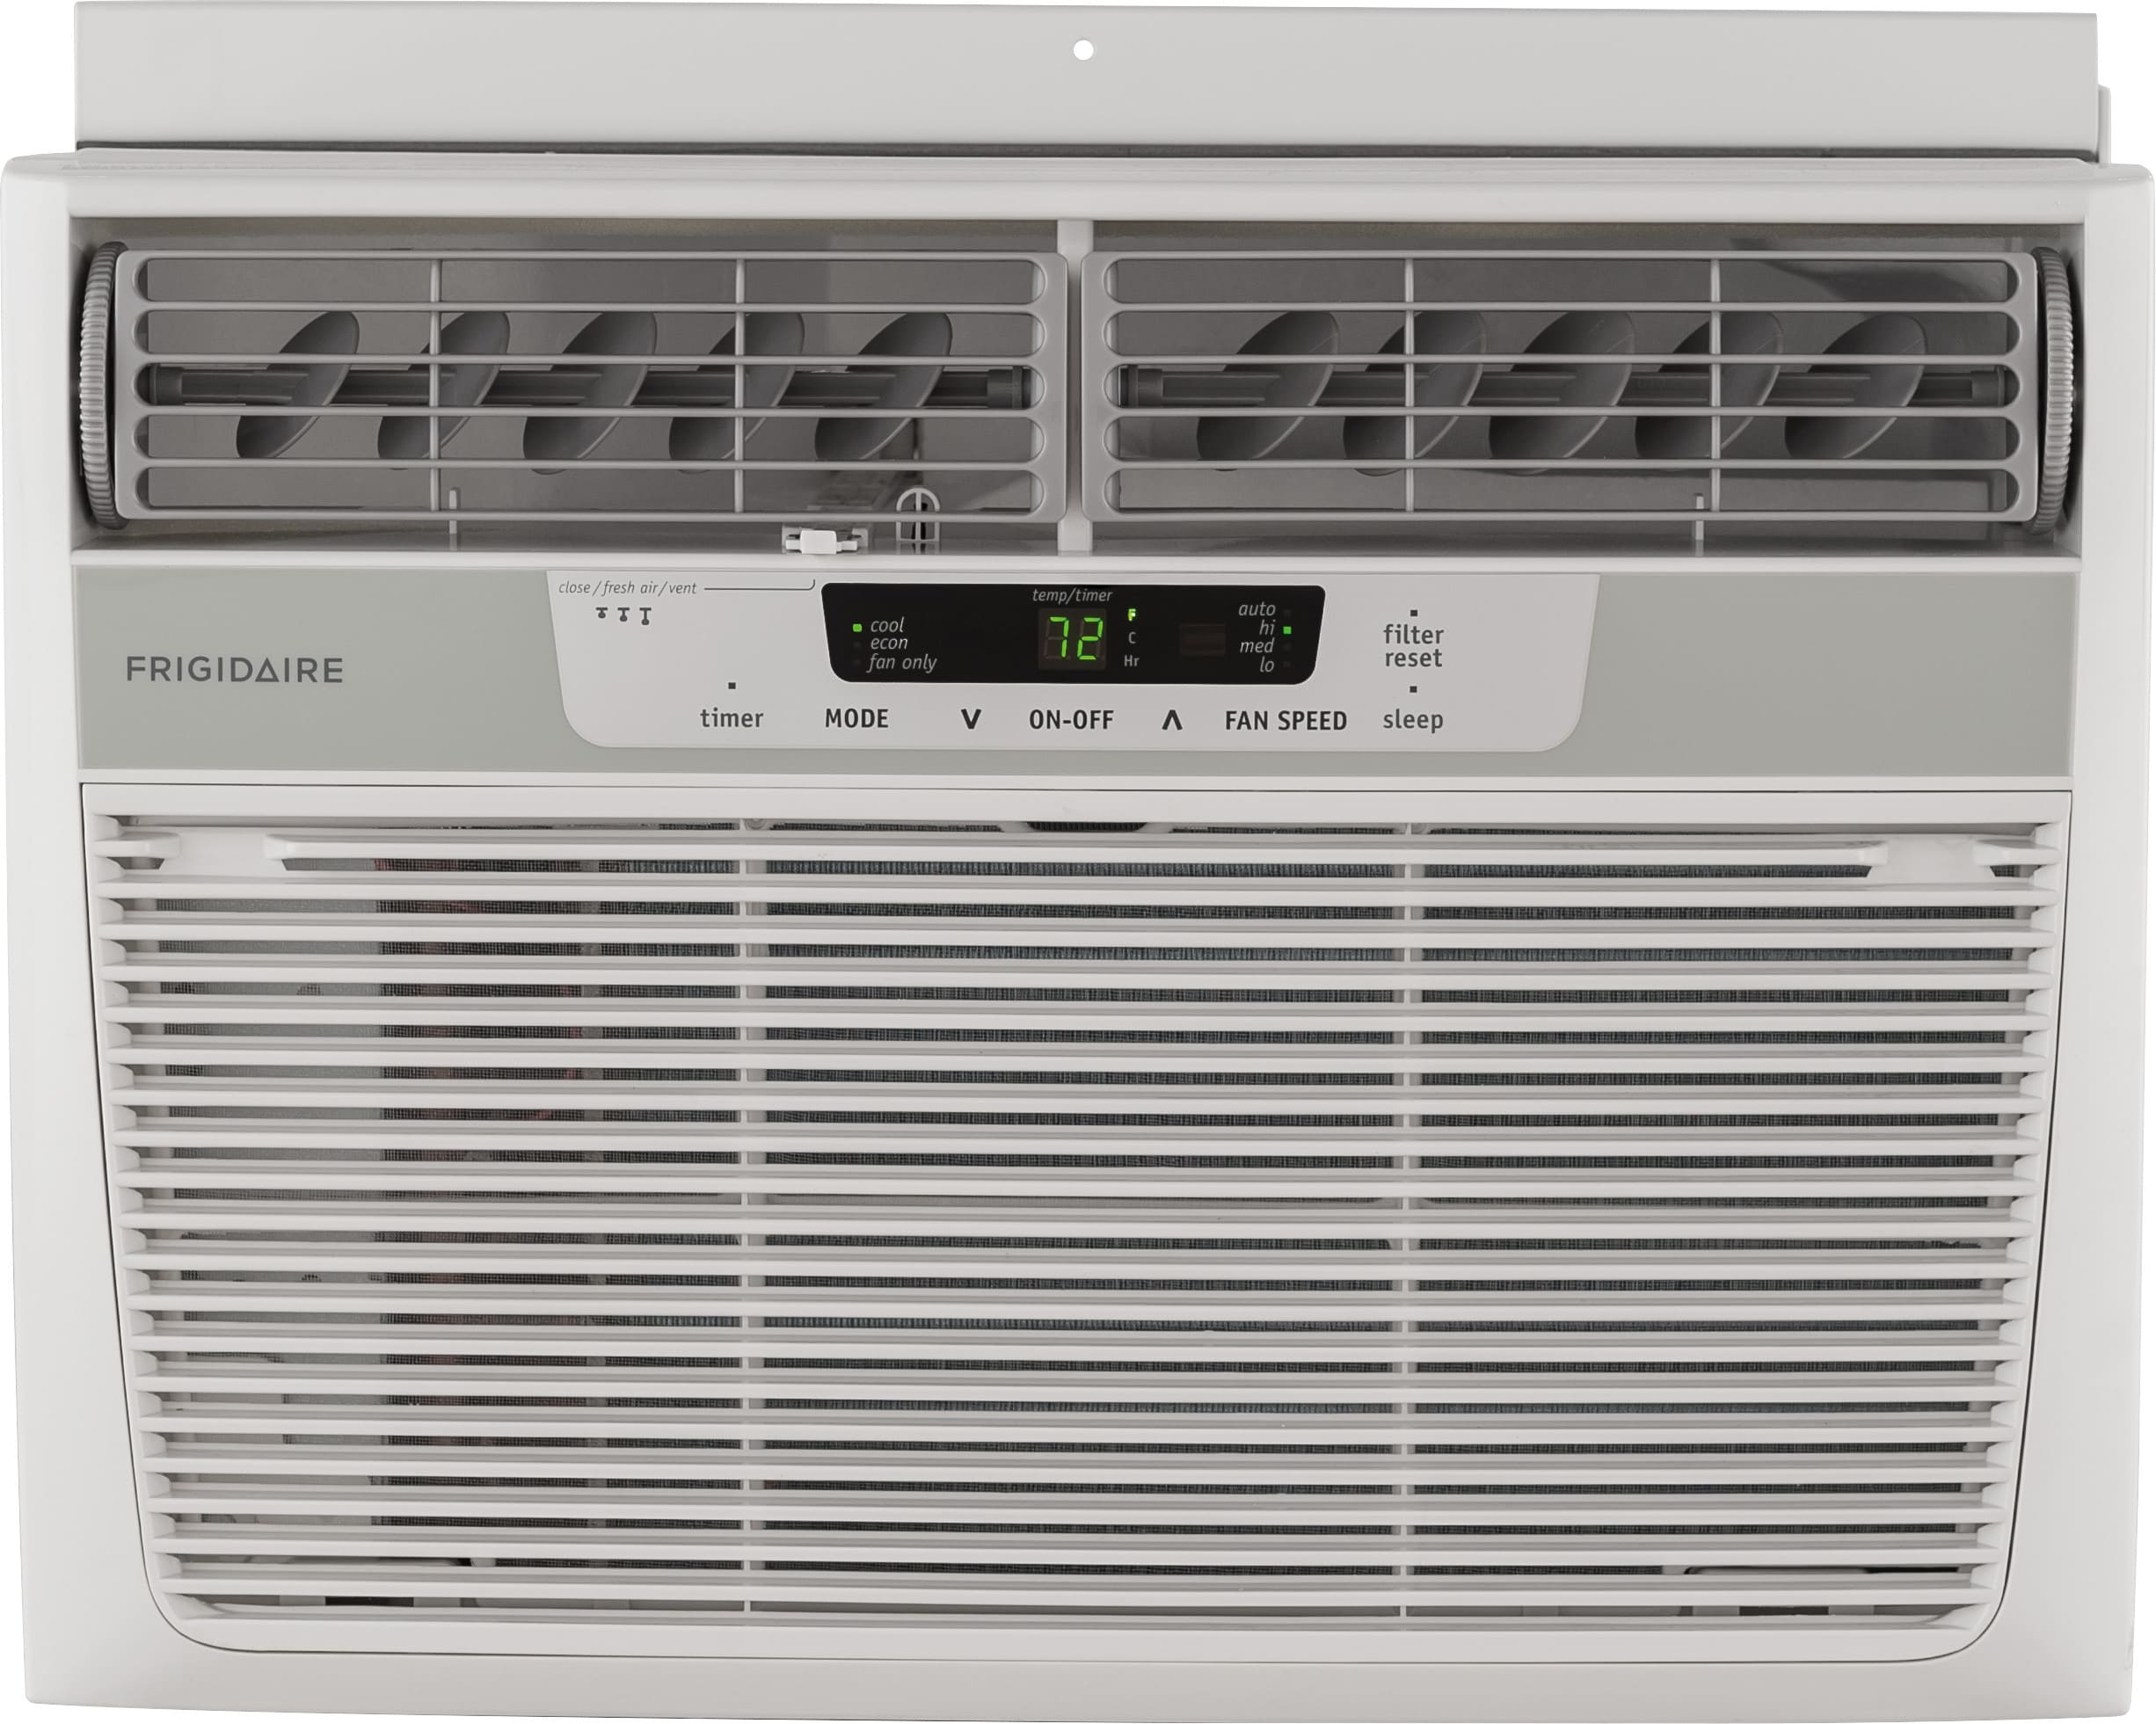 Frigidaire ffra1022r1 10000 btu window air conditioner with 109 btu window air conditioner with 109 eer r 410a refrigerant 27 ptshr dehumidification 450 sq ft cooling area auto restart and remote control biocorpaavc Choice Image